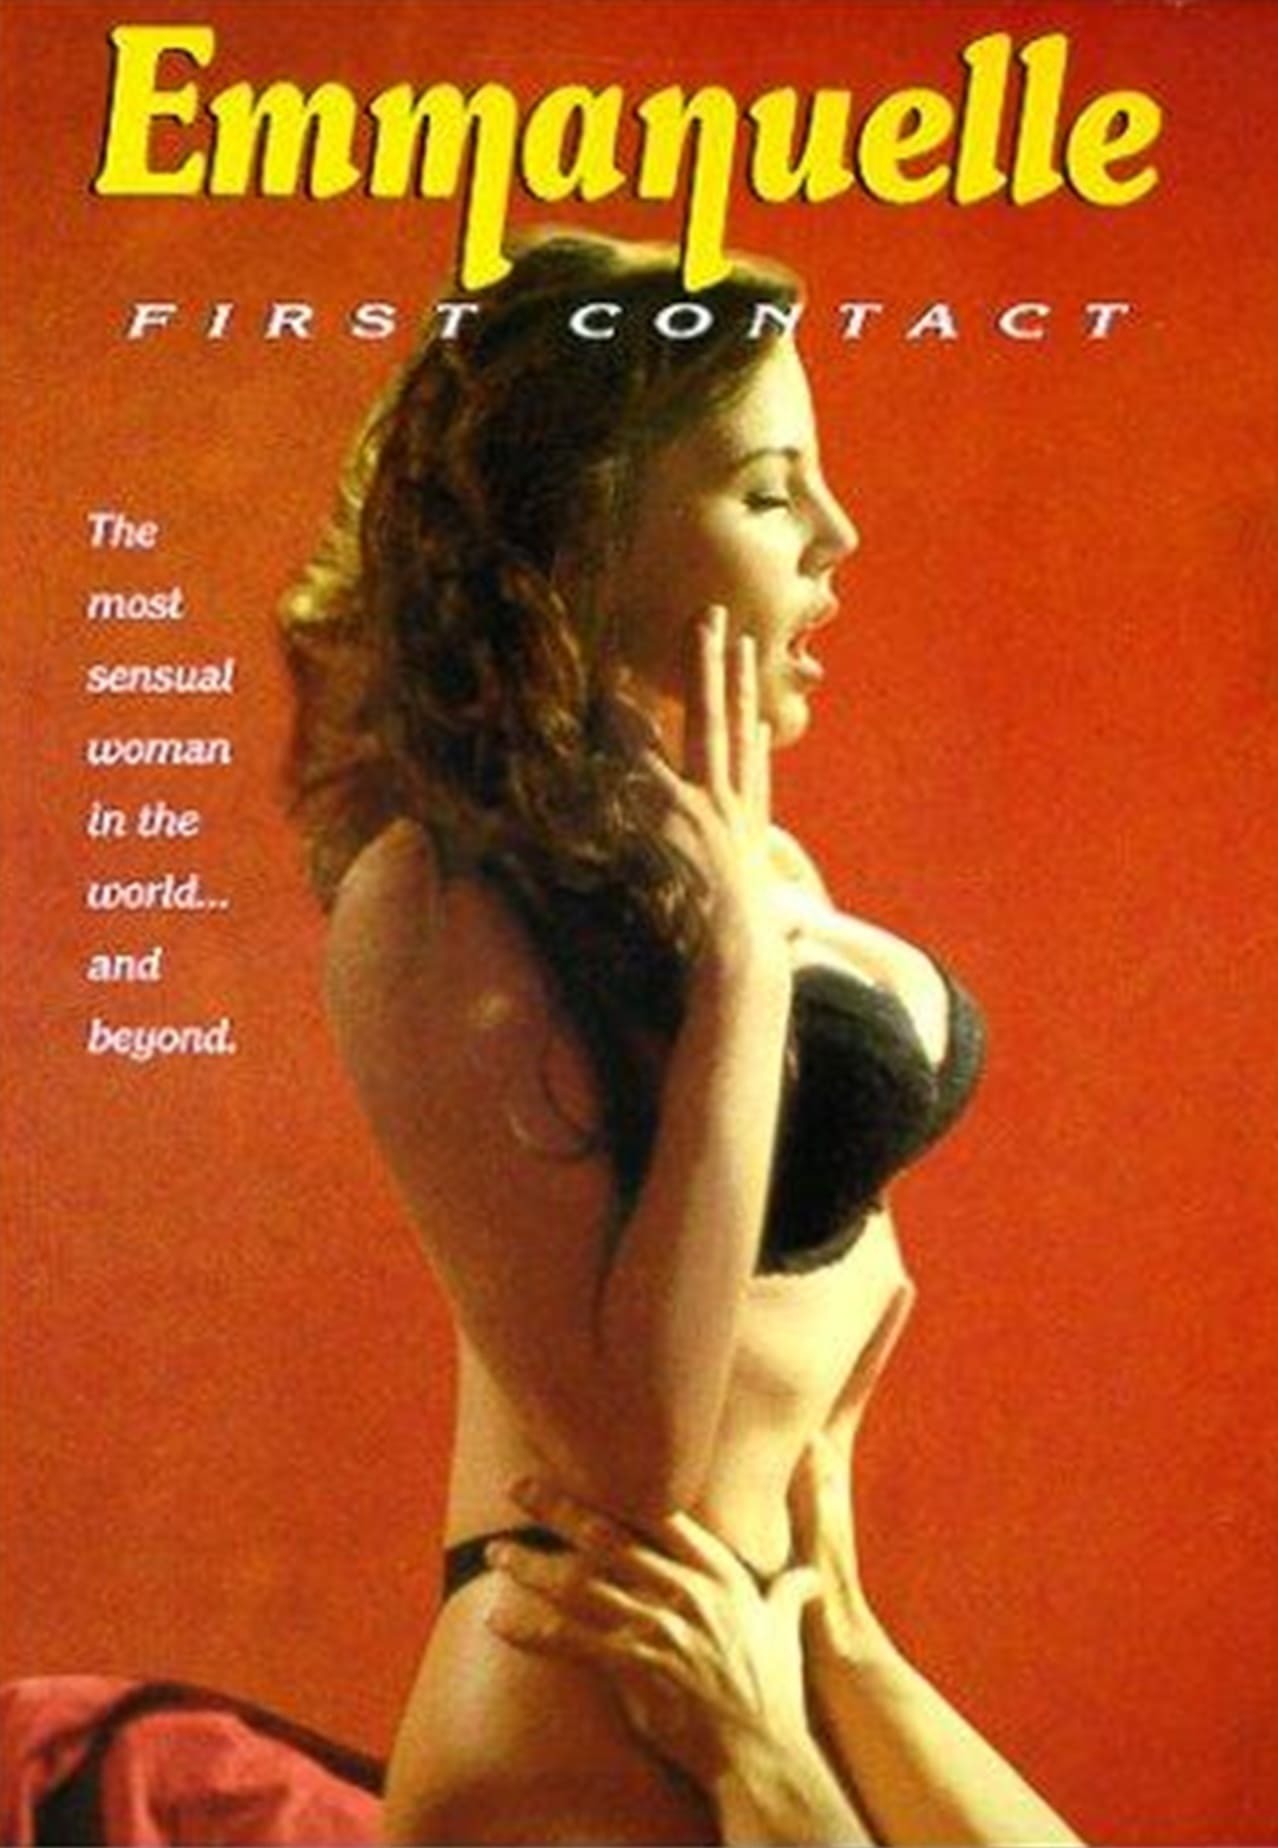 Emmanuelle: First Contact (1994) DVDRip XviD 700MB